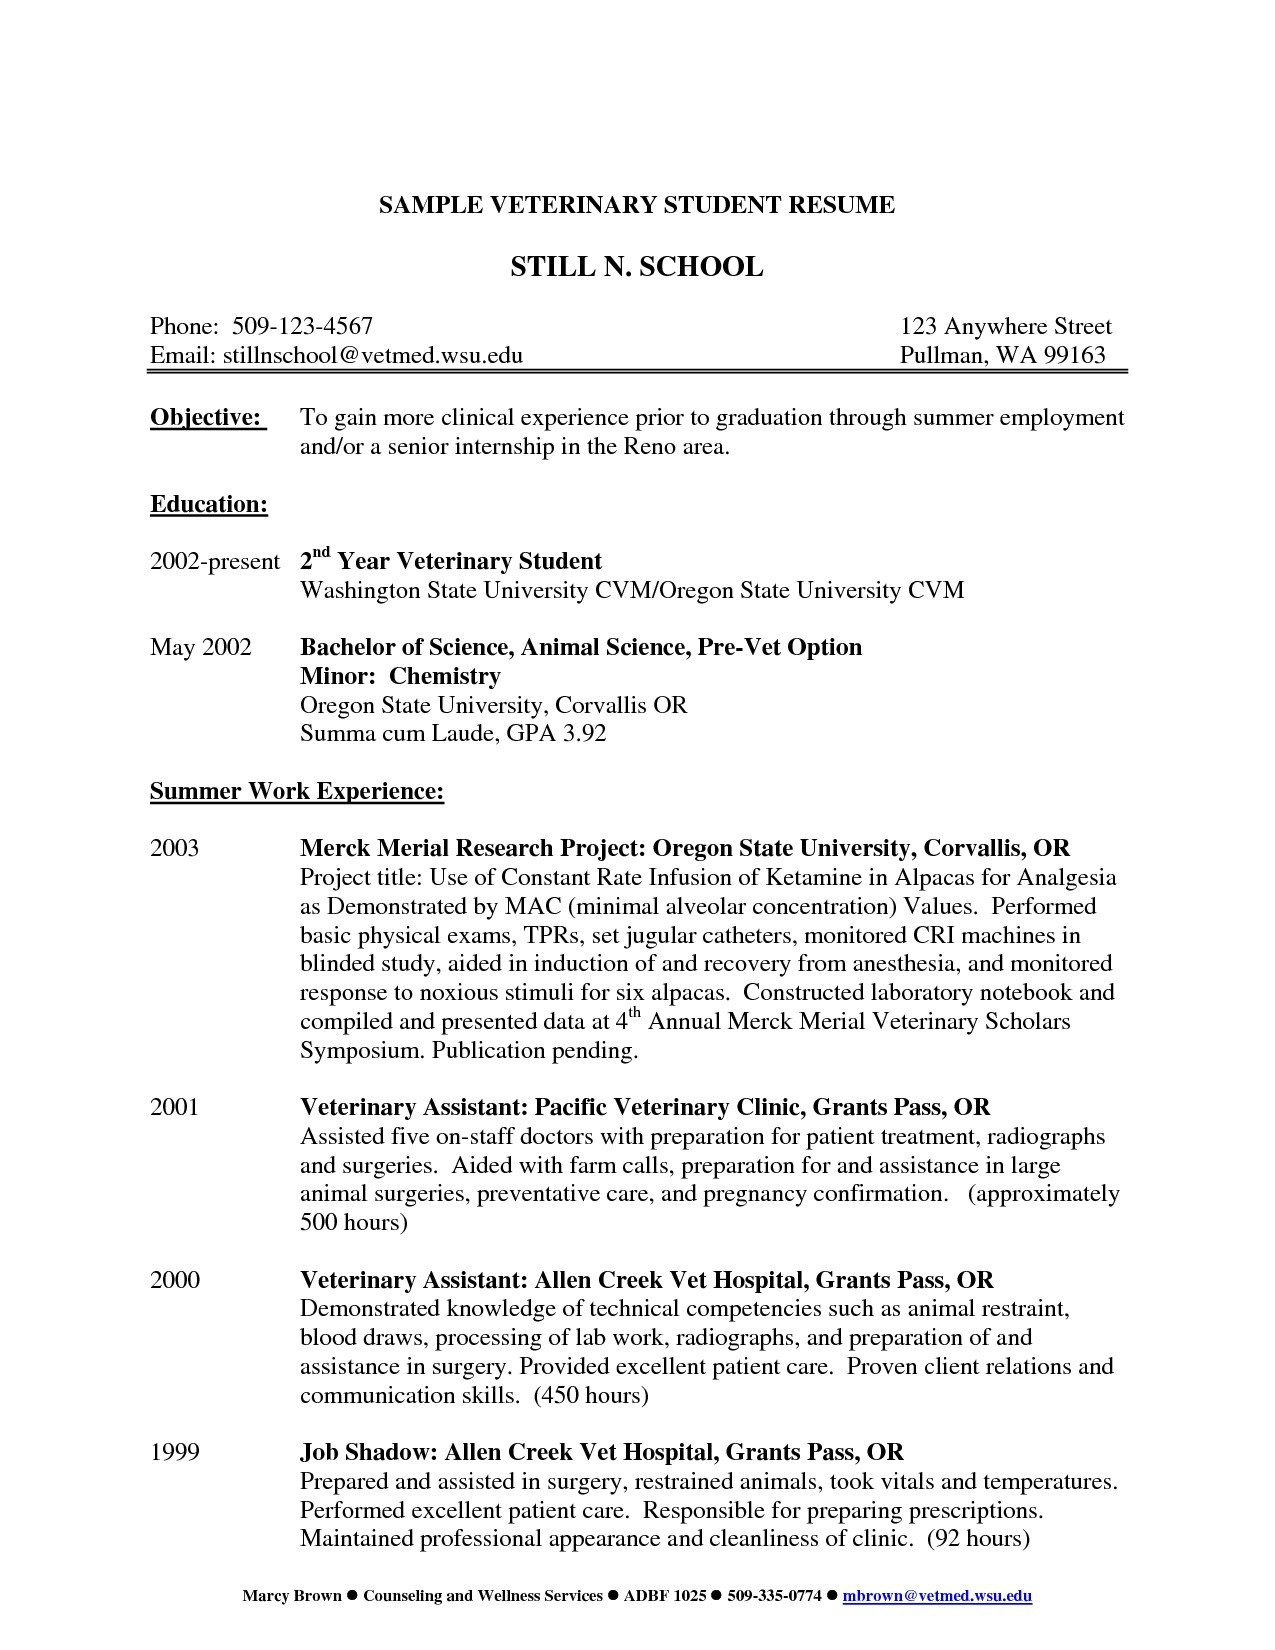 11 veterinary assistant resume template samples